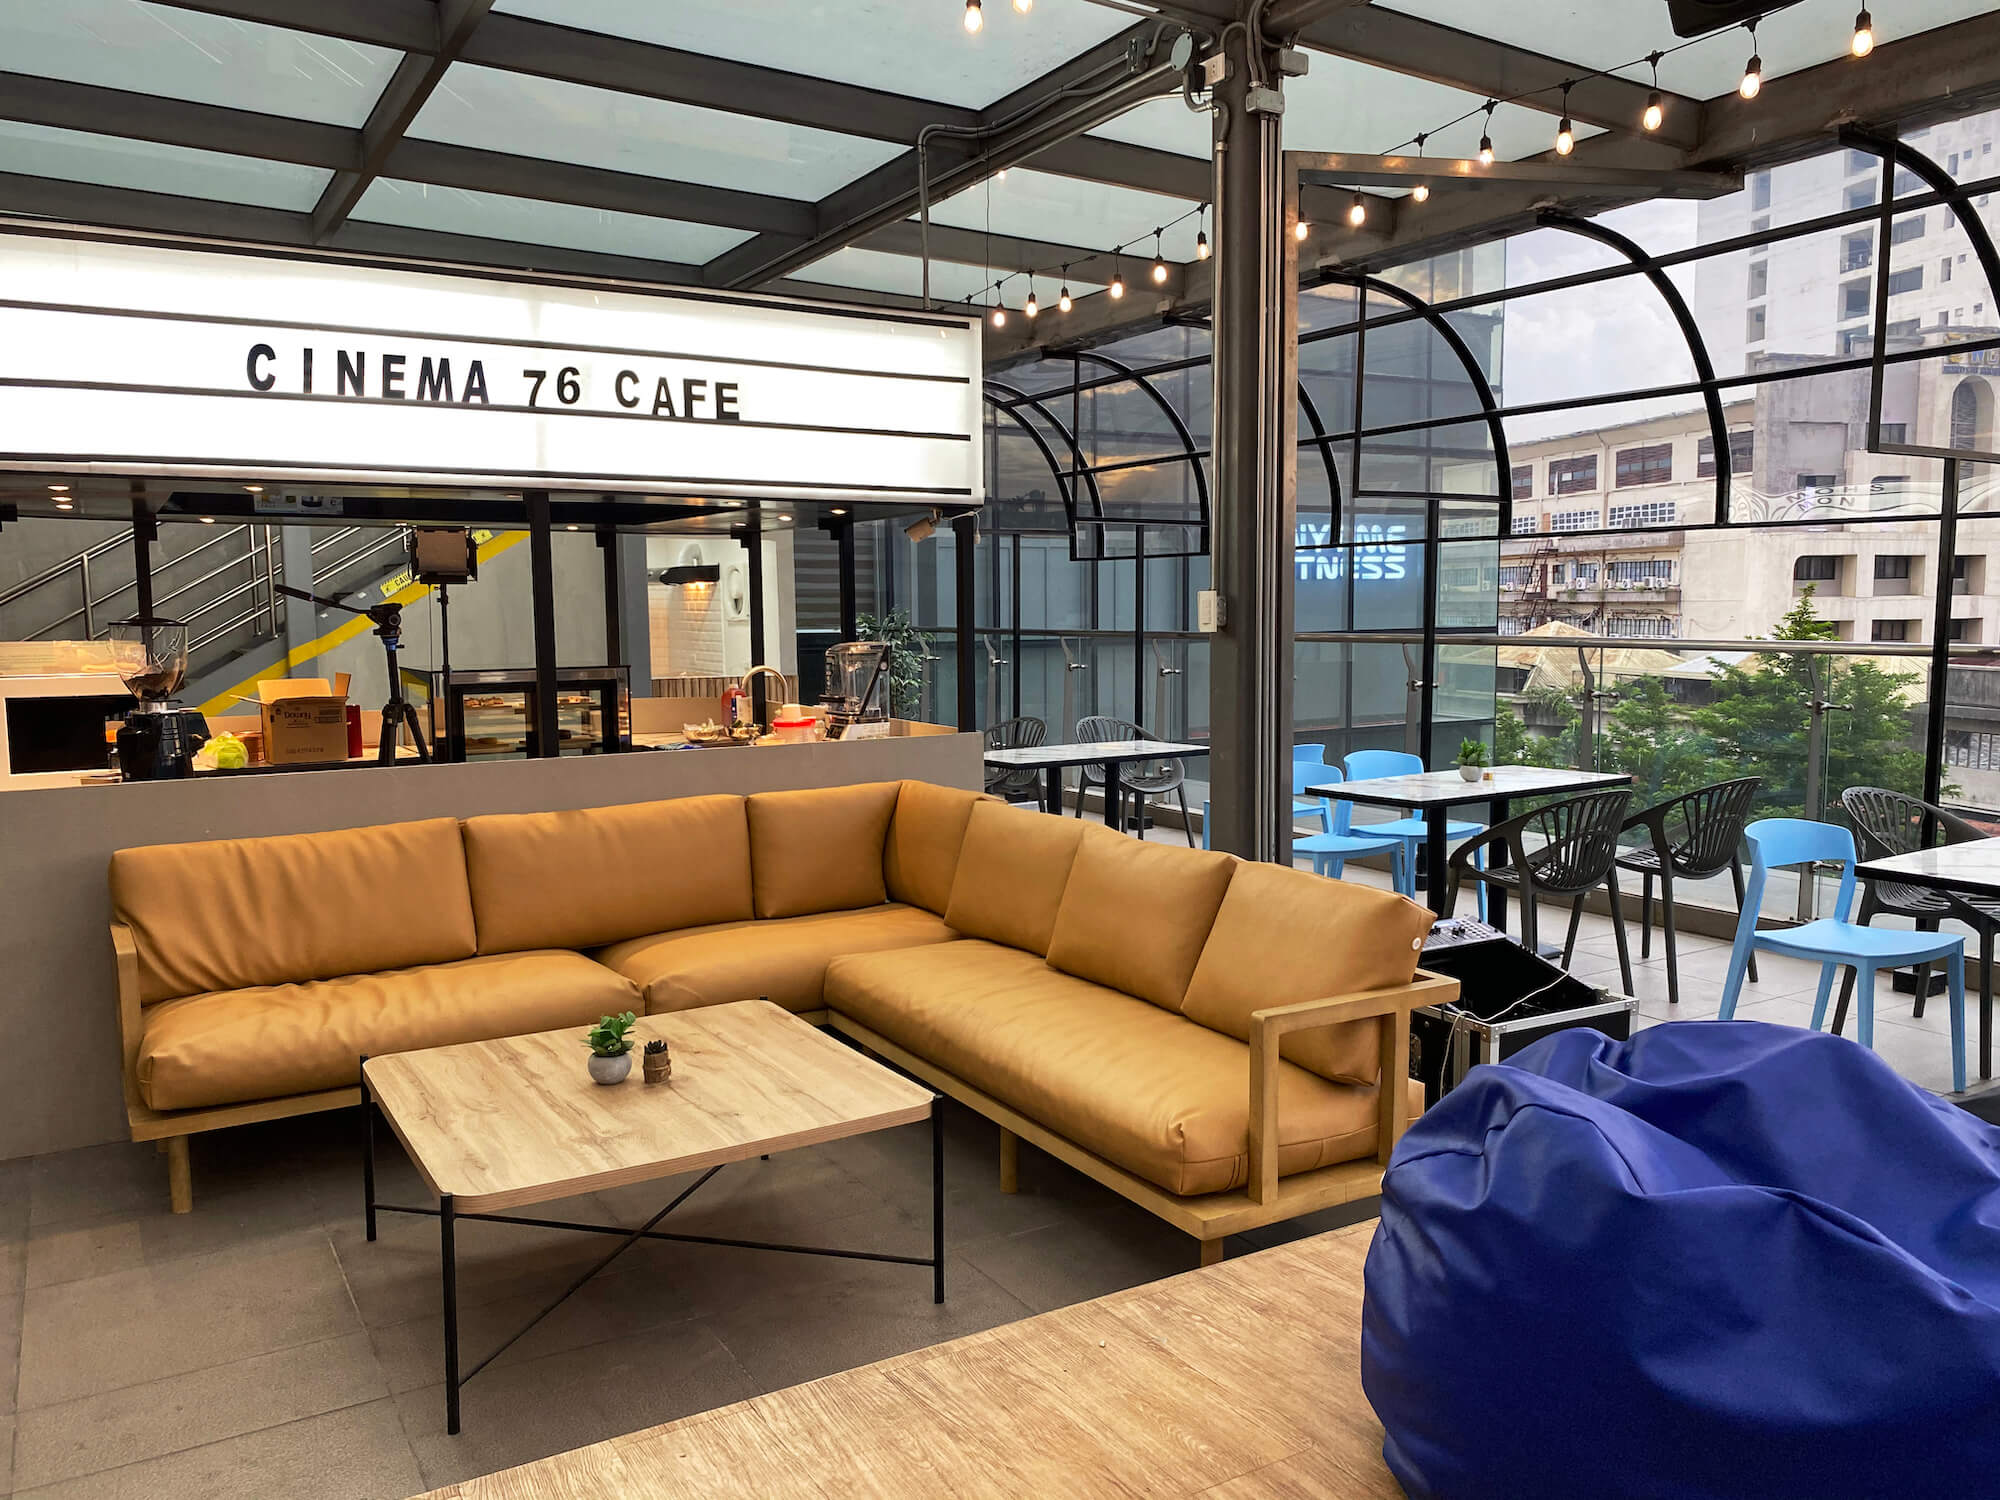 FIRST LOOK: 'Cinema 76 Cafe' Movie-Themed Restaurant Opens June 11